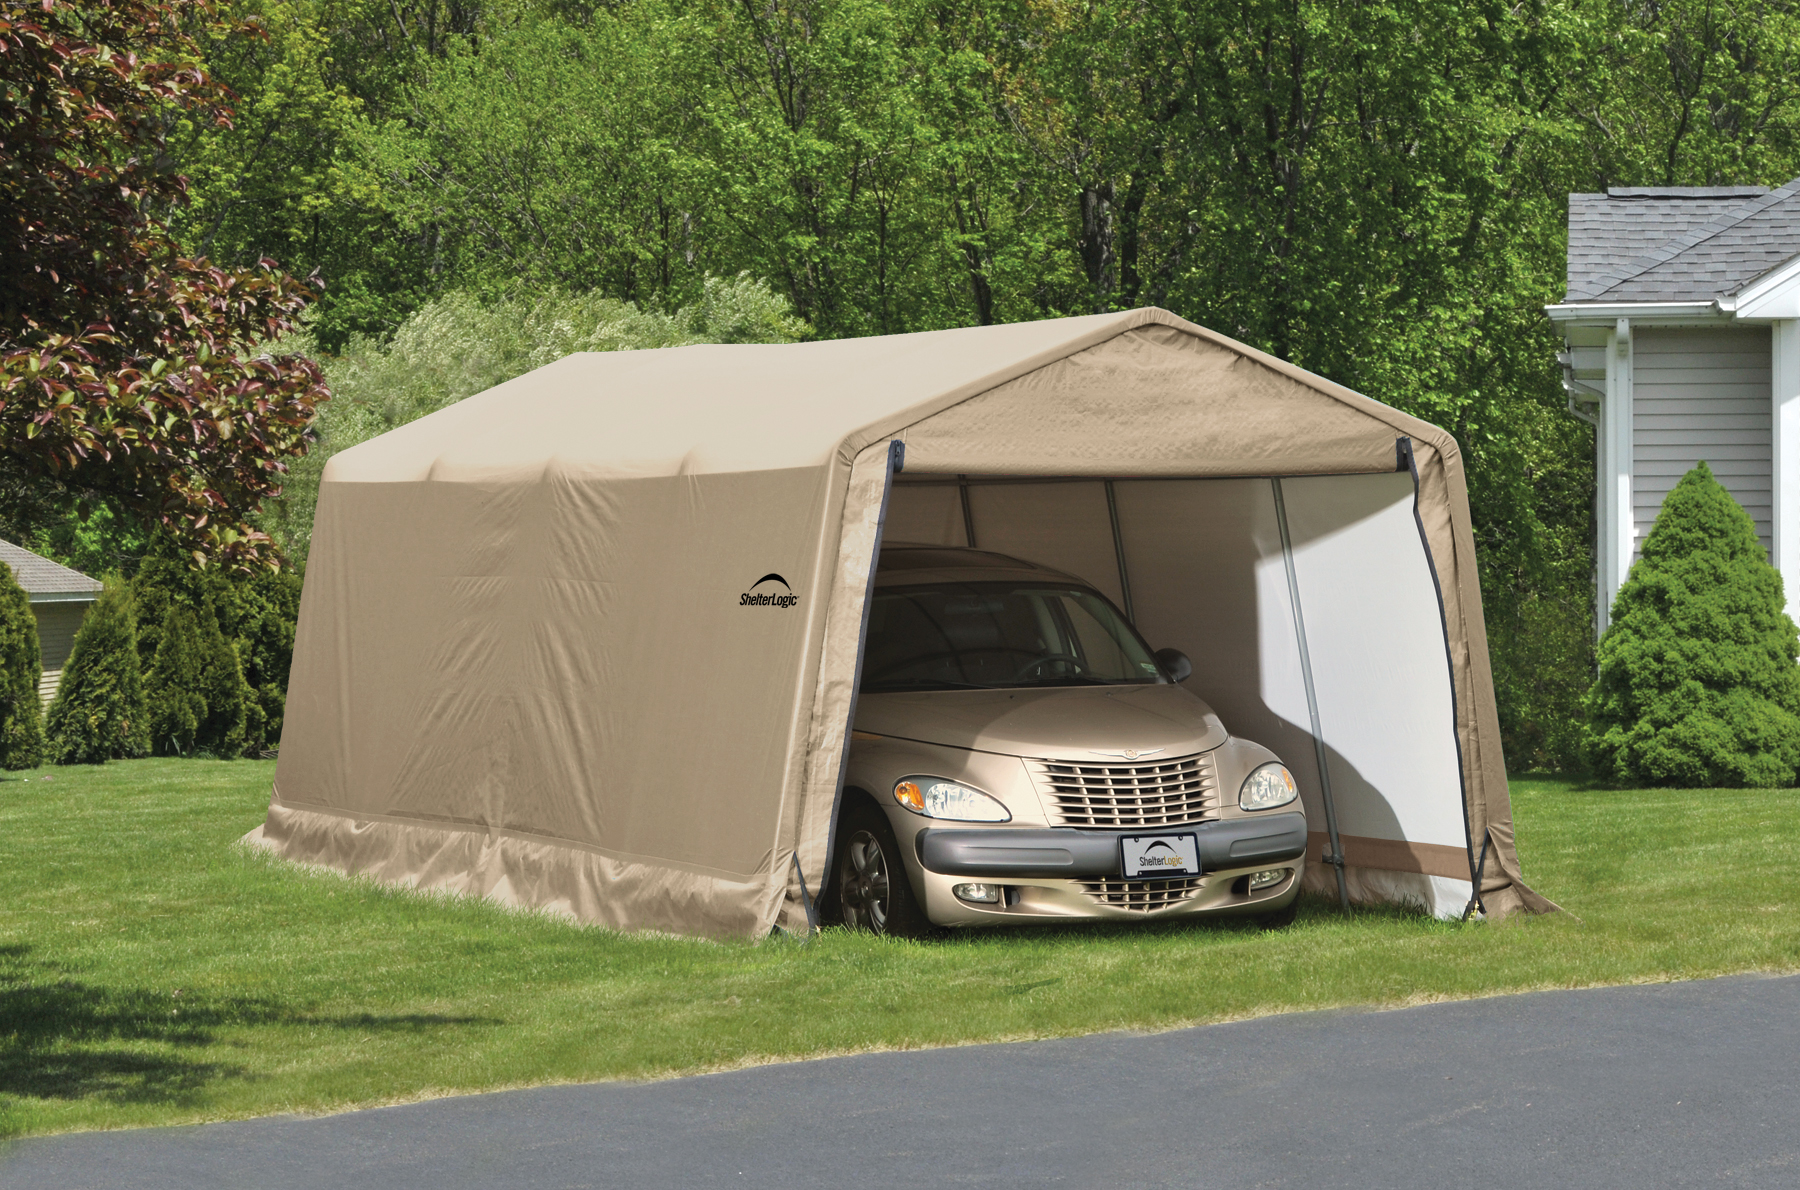 Portable Carports At Costco : Shelterlogic portable car garage shelters